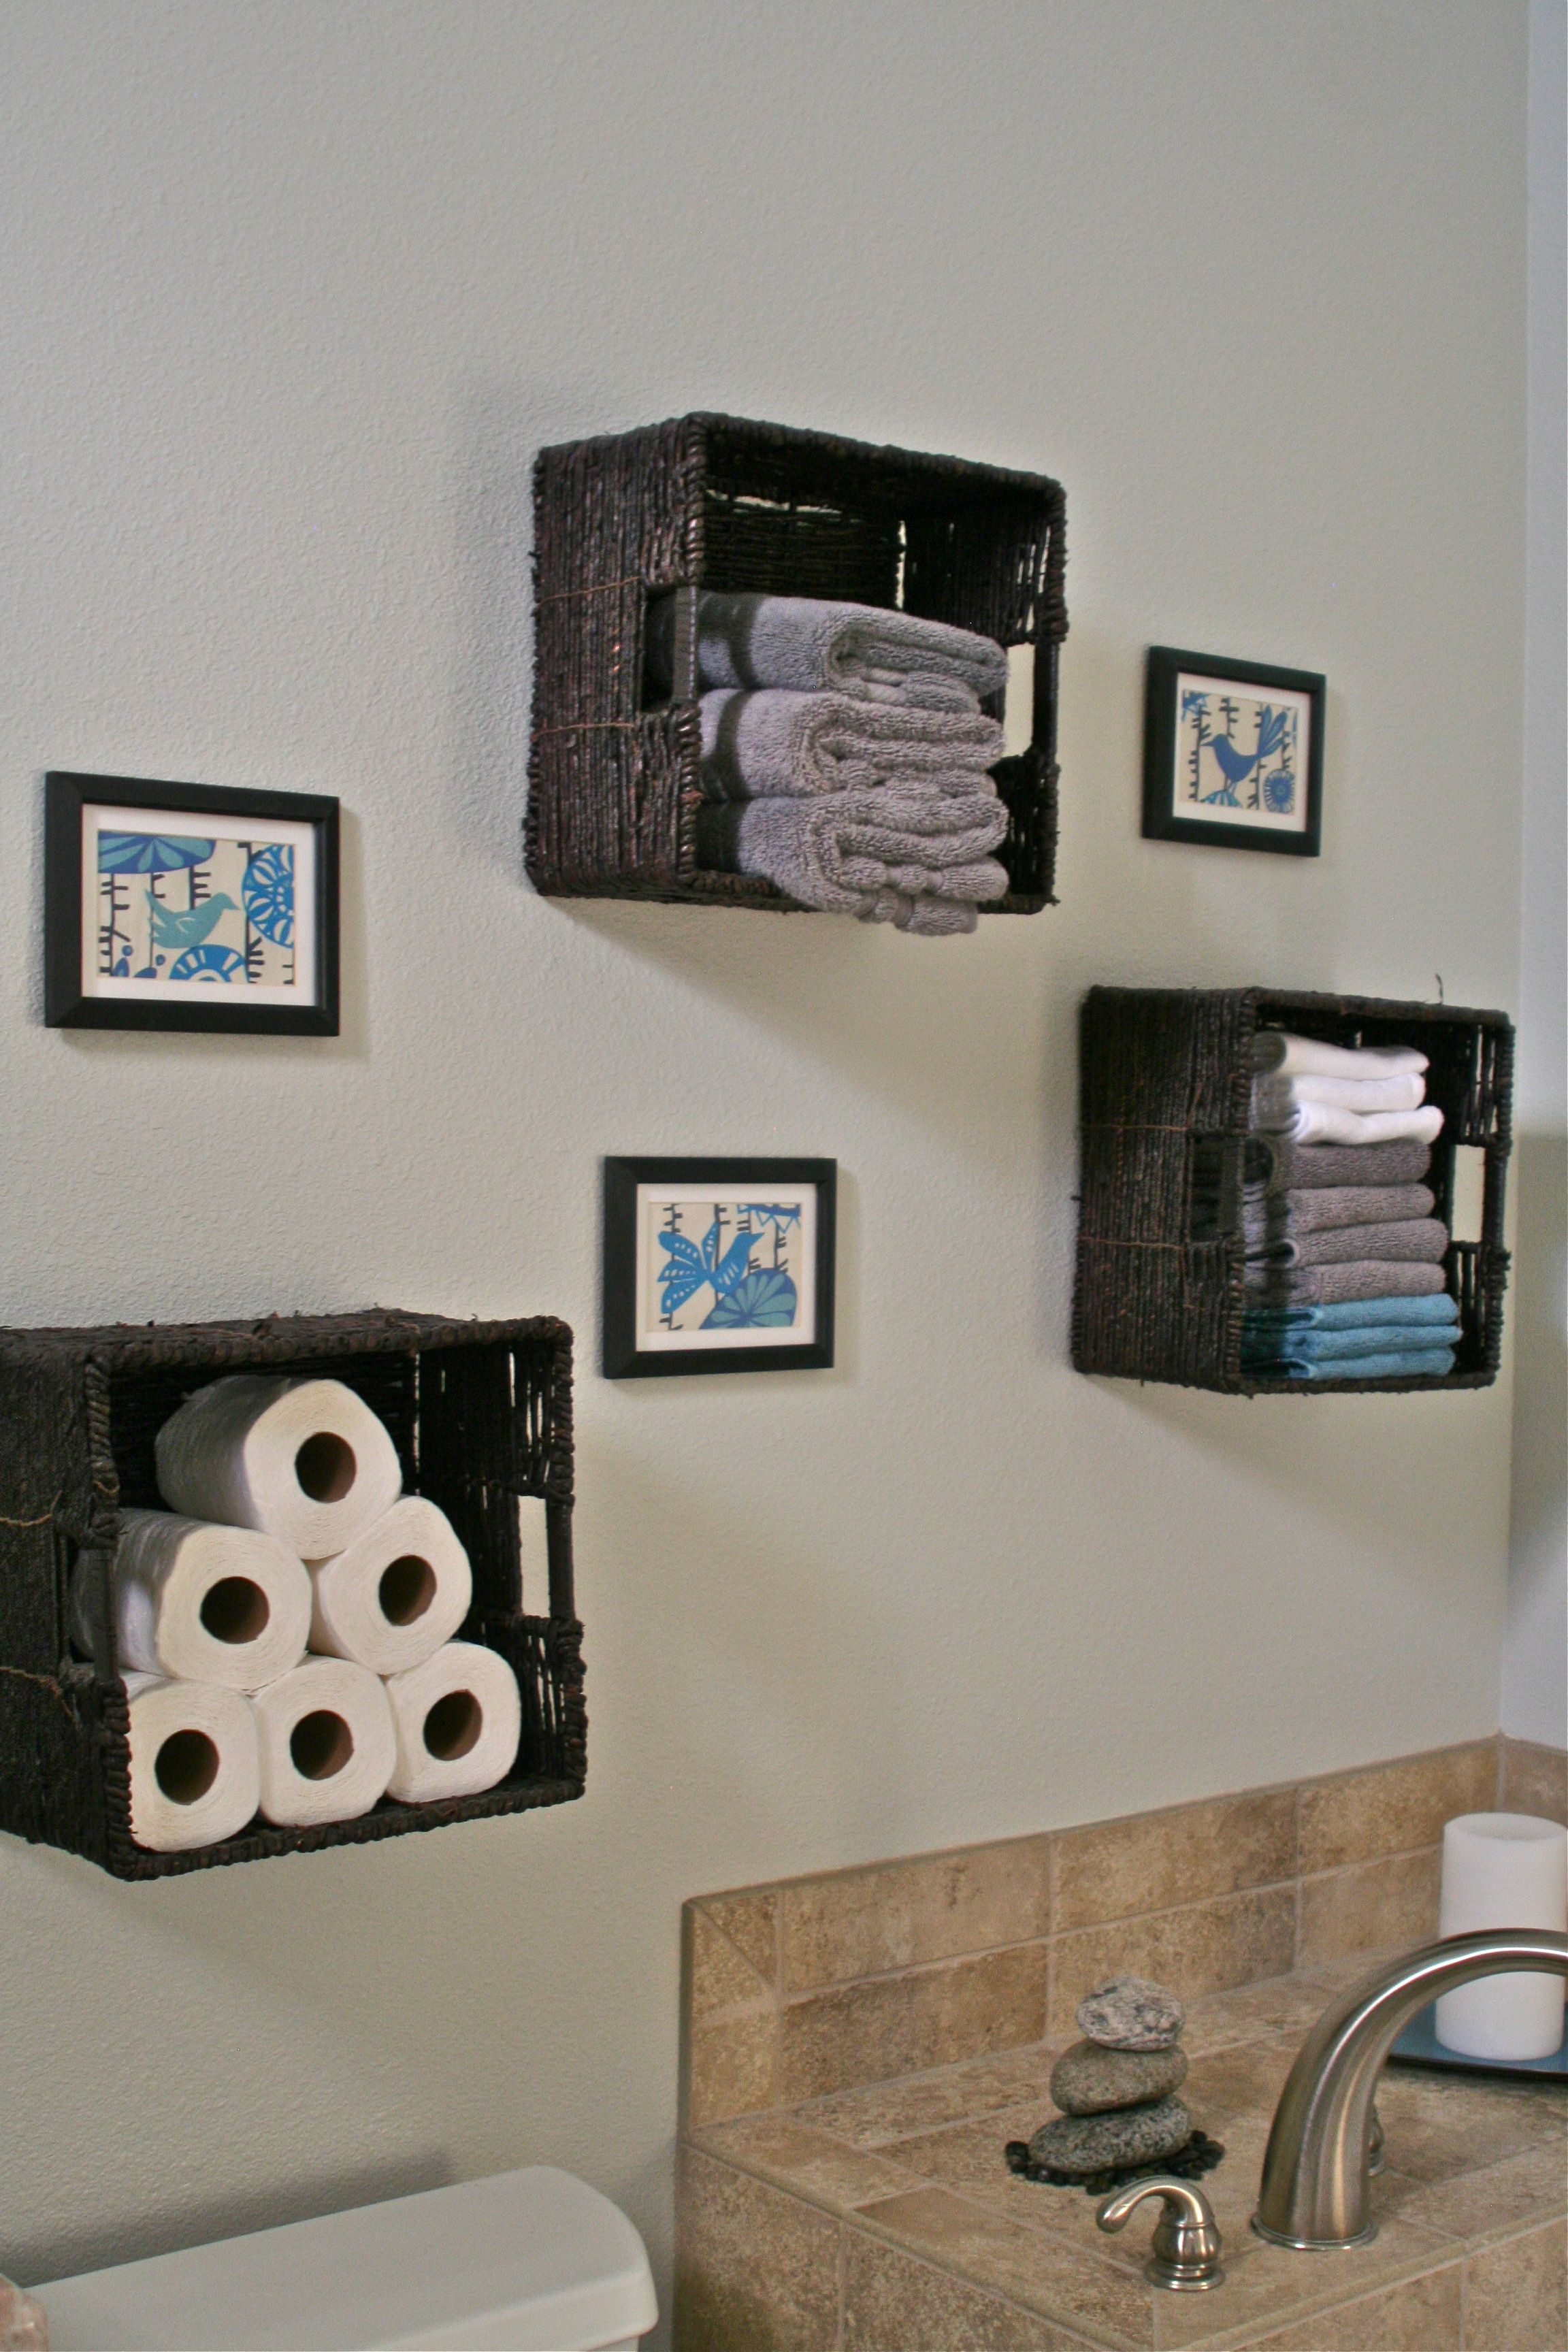 Bathroom Storage Baskets For Towels Toilet Paper Etc Love within sizing 2304 X 3456